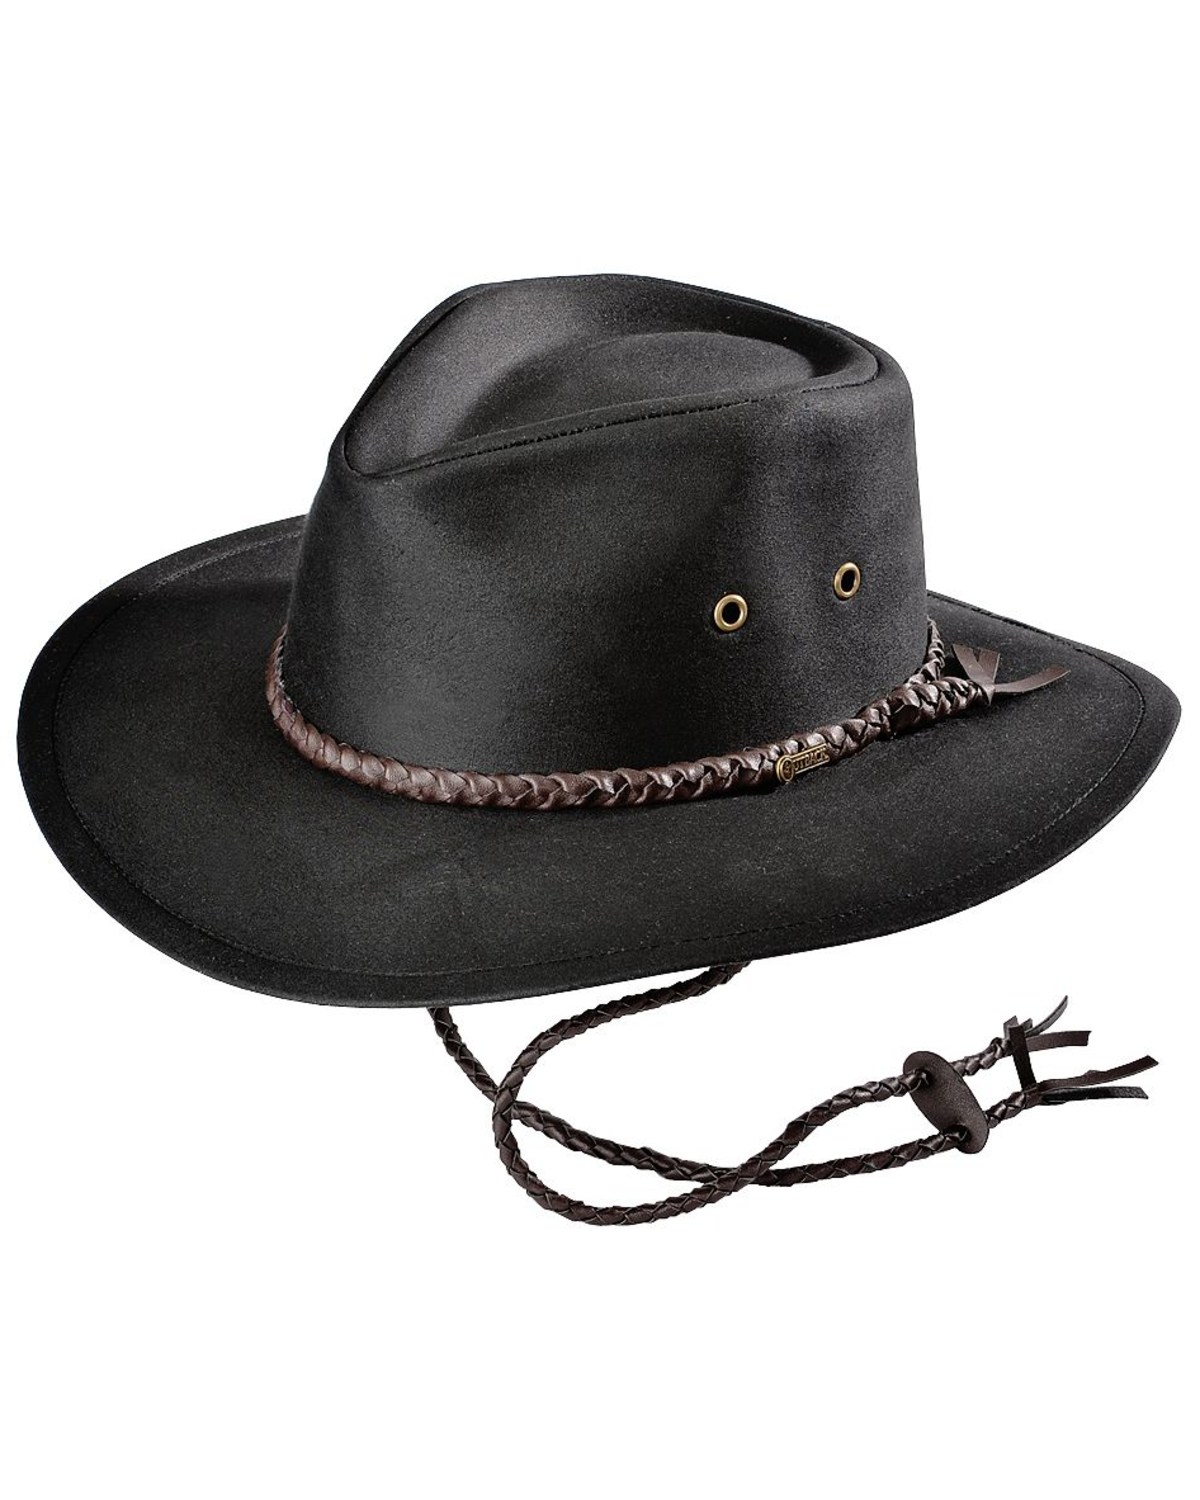 Outback Trading Co. Grizzly Oilskin Hat  cd73470def7